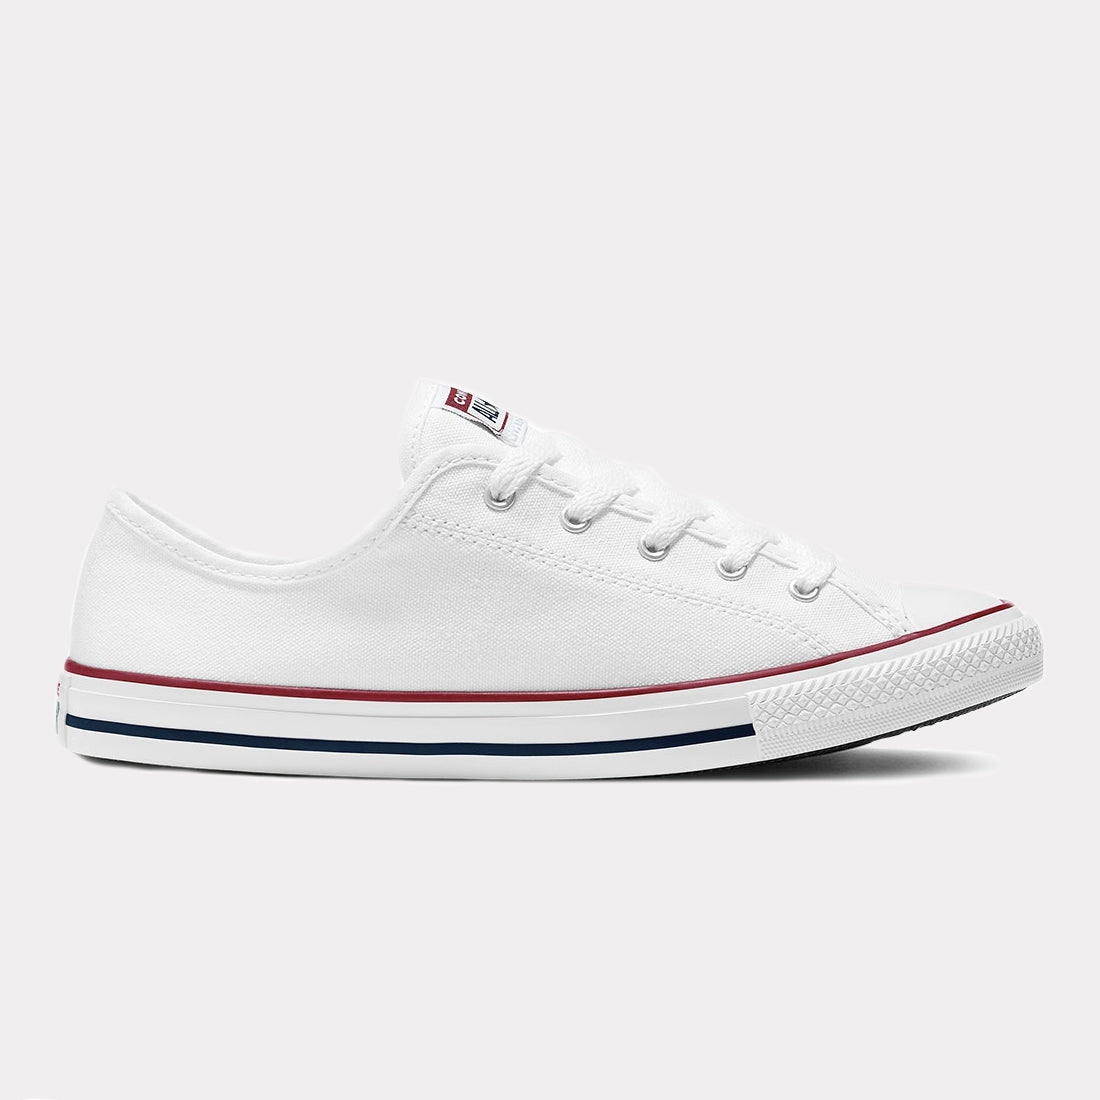 Chuck Taylor All Star Dainty Basic Canvas Low Top - White